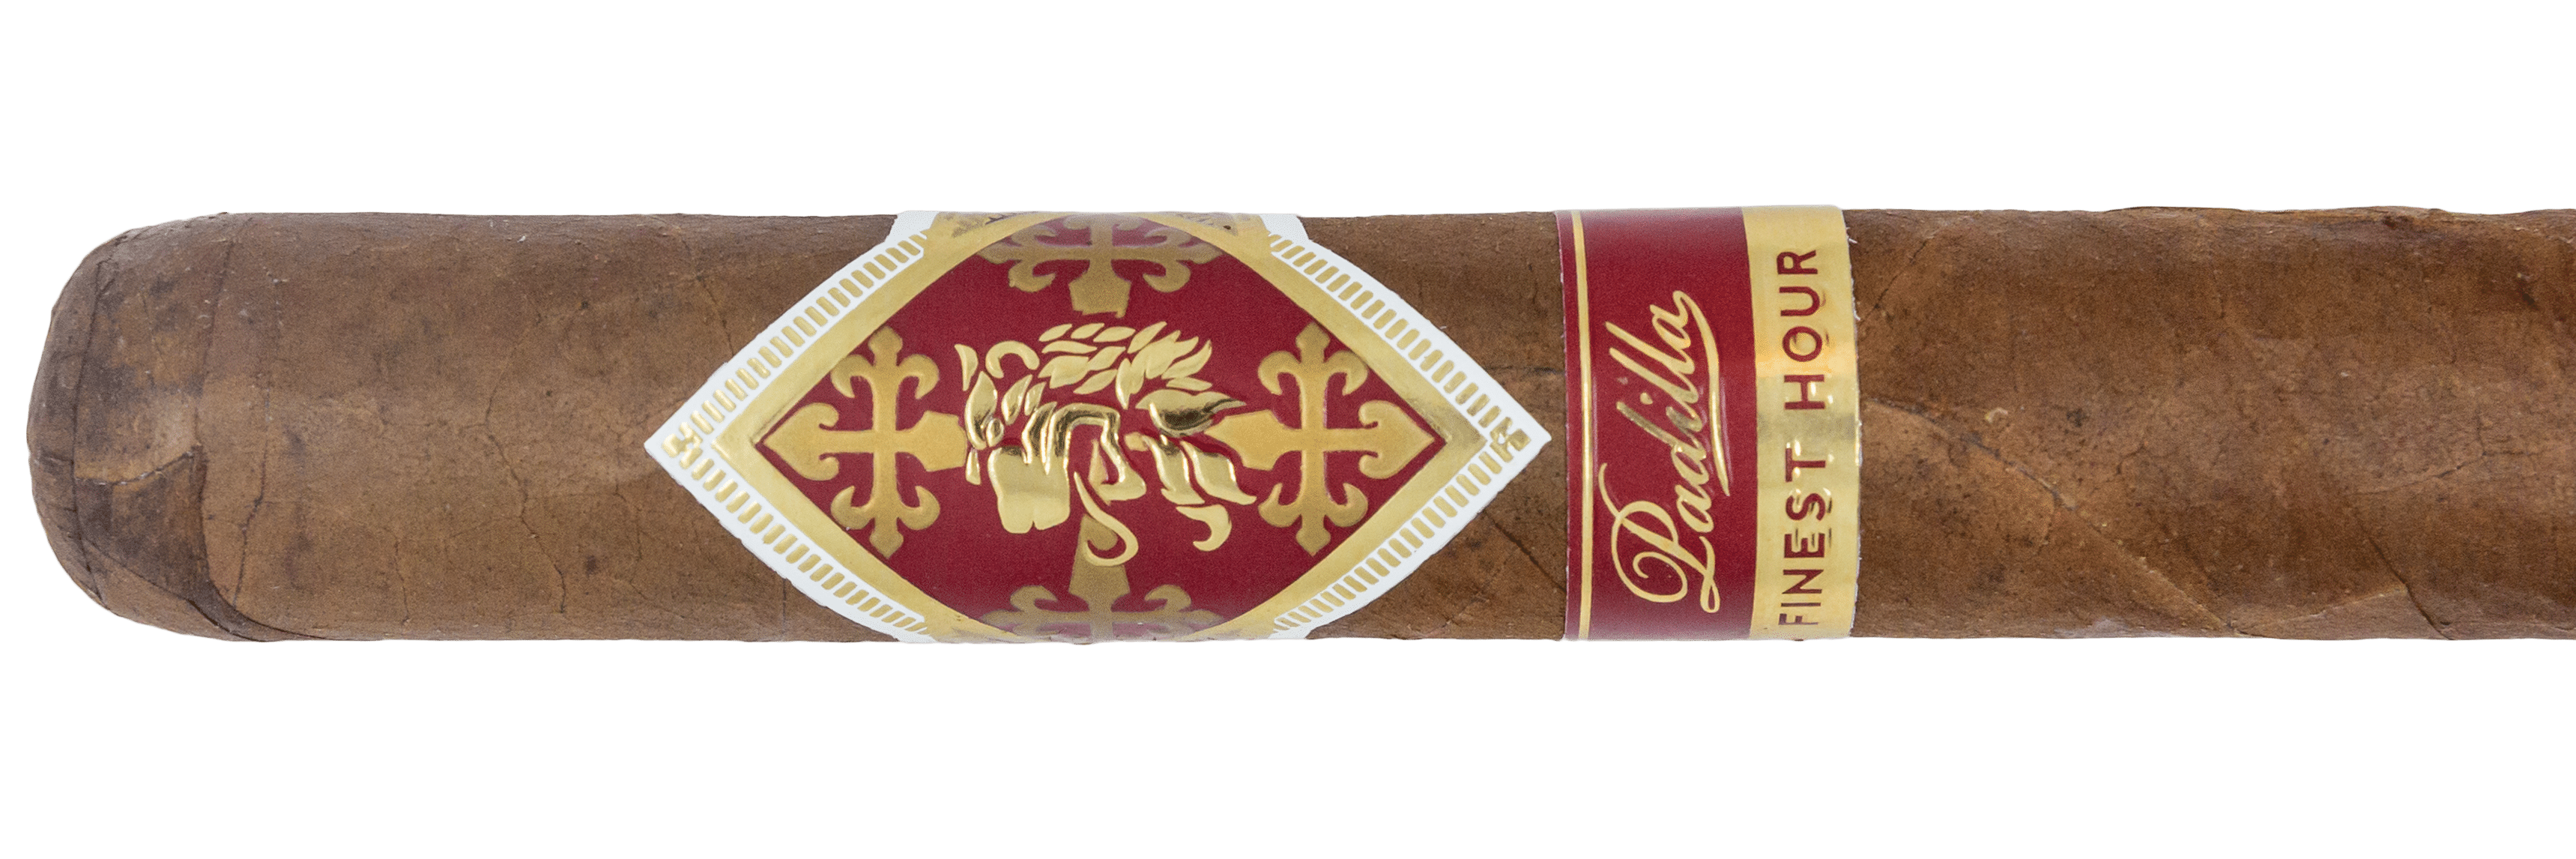 Padilla Finest Hour Sungrown Robusto - Blind Cigar Review